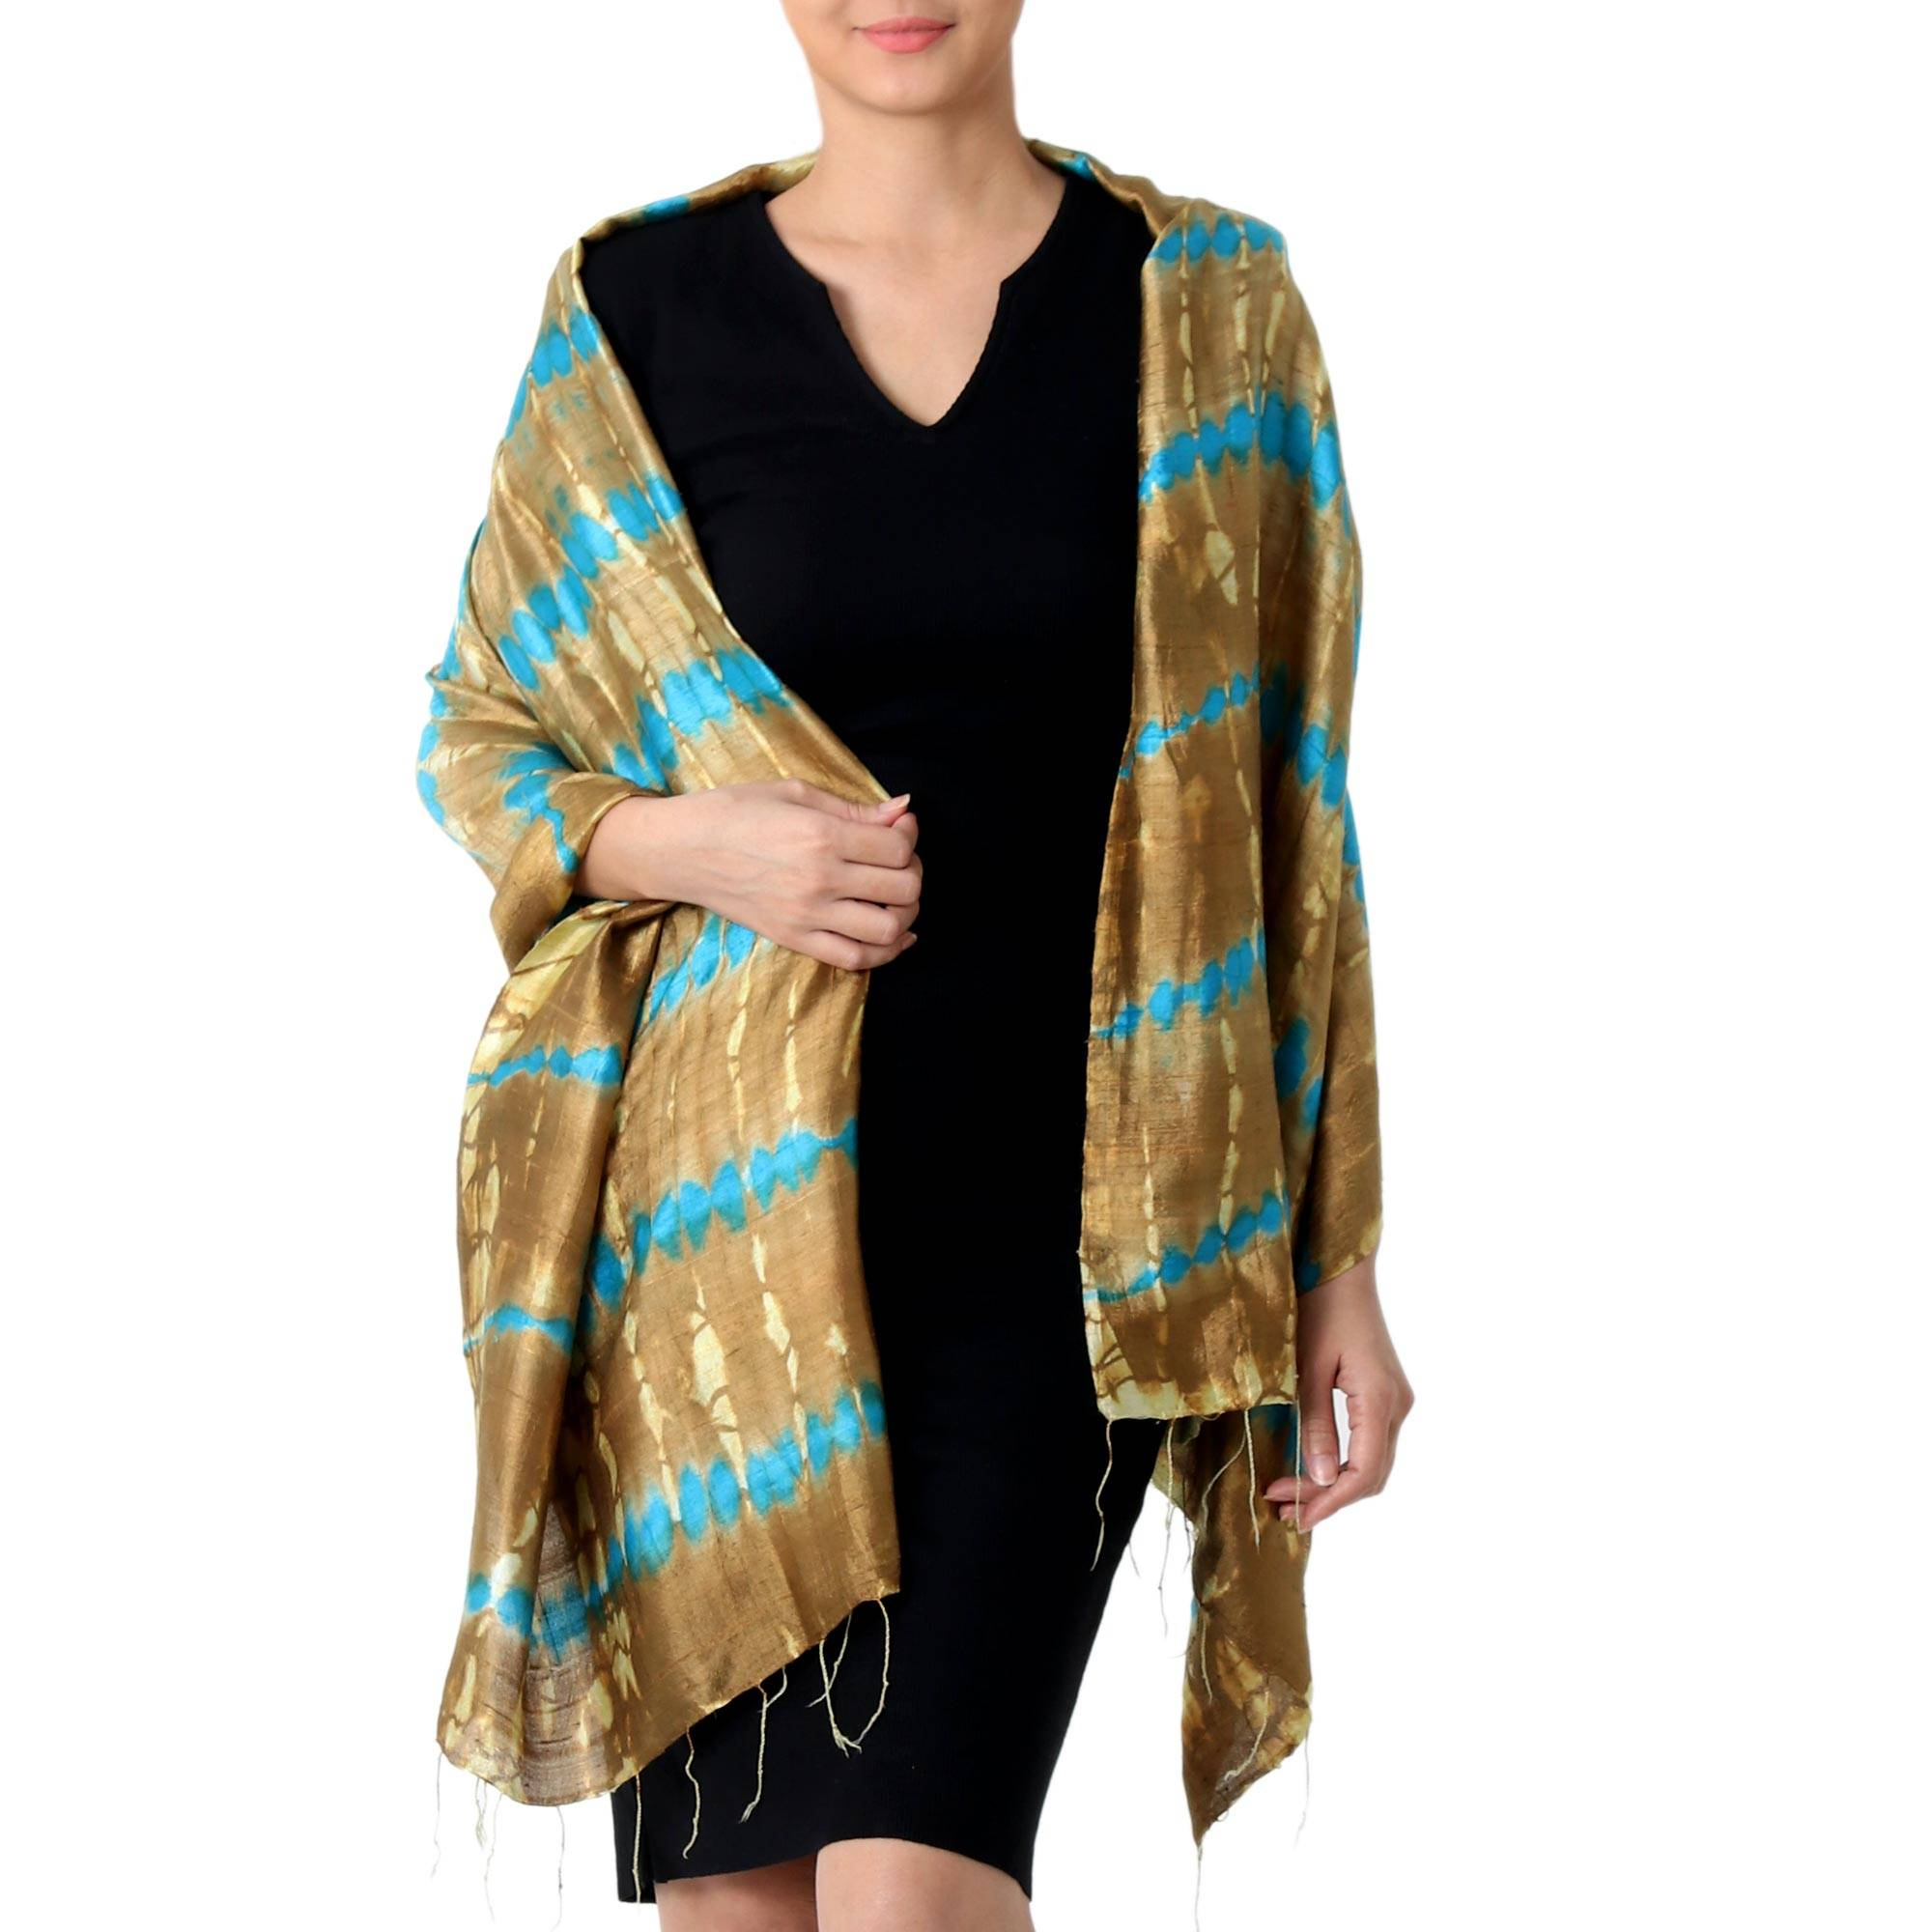 112268747a9b Tie-Dyed Silk Shawl in Sand and Cyan Stripes from Thailand,